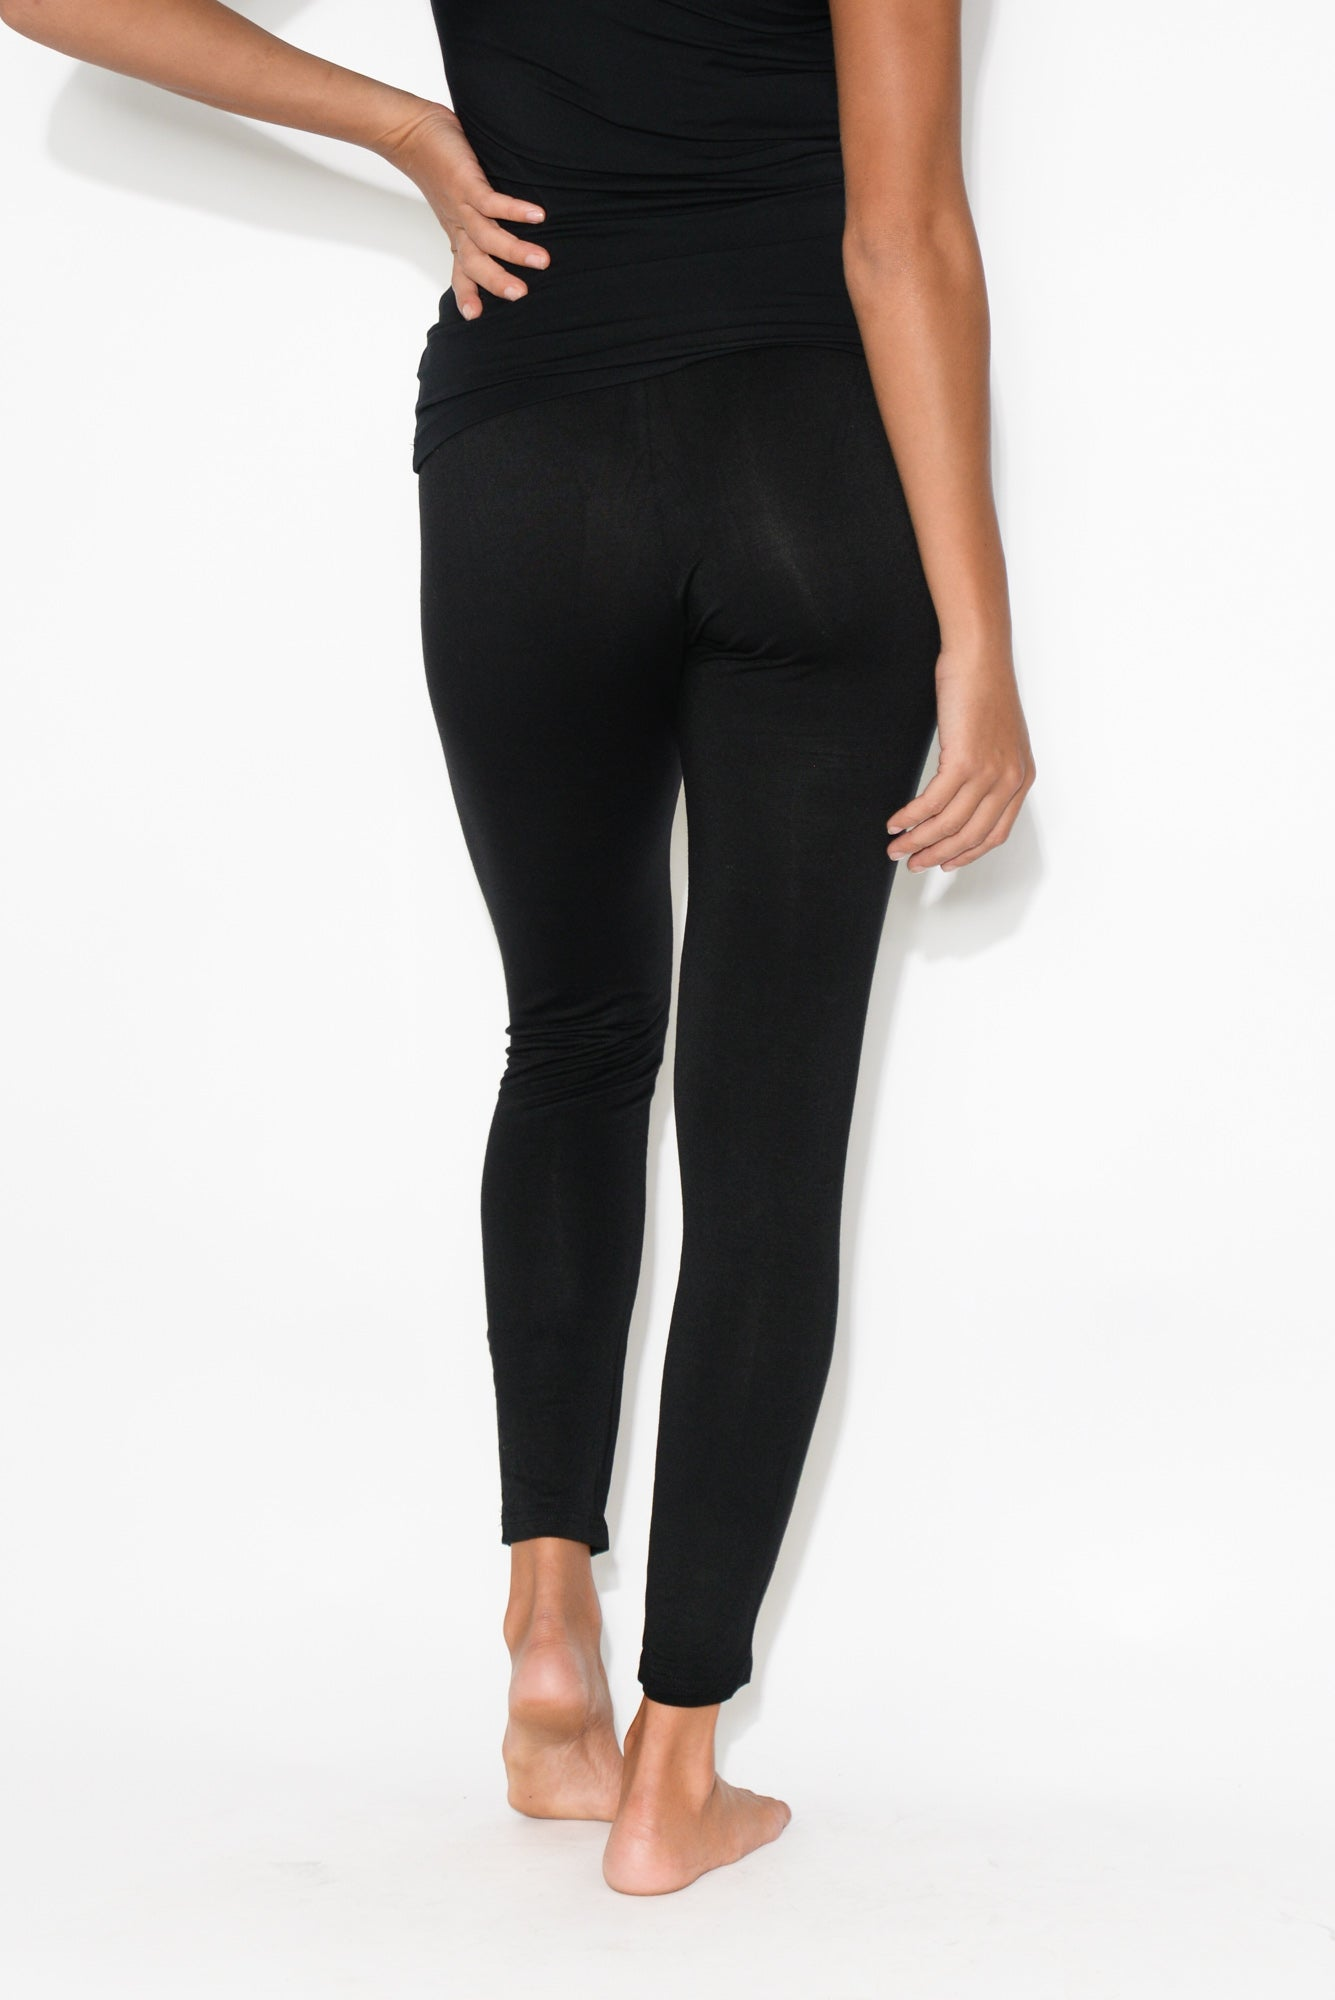 Jane Black Stretch Legging